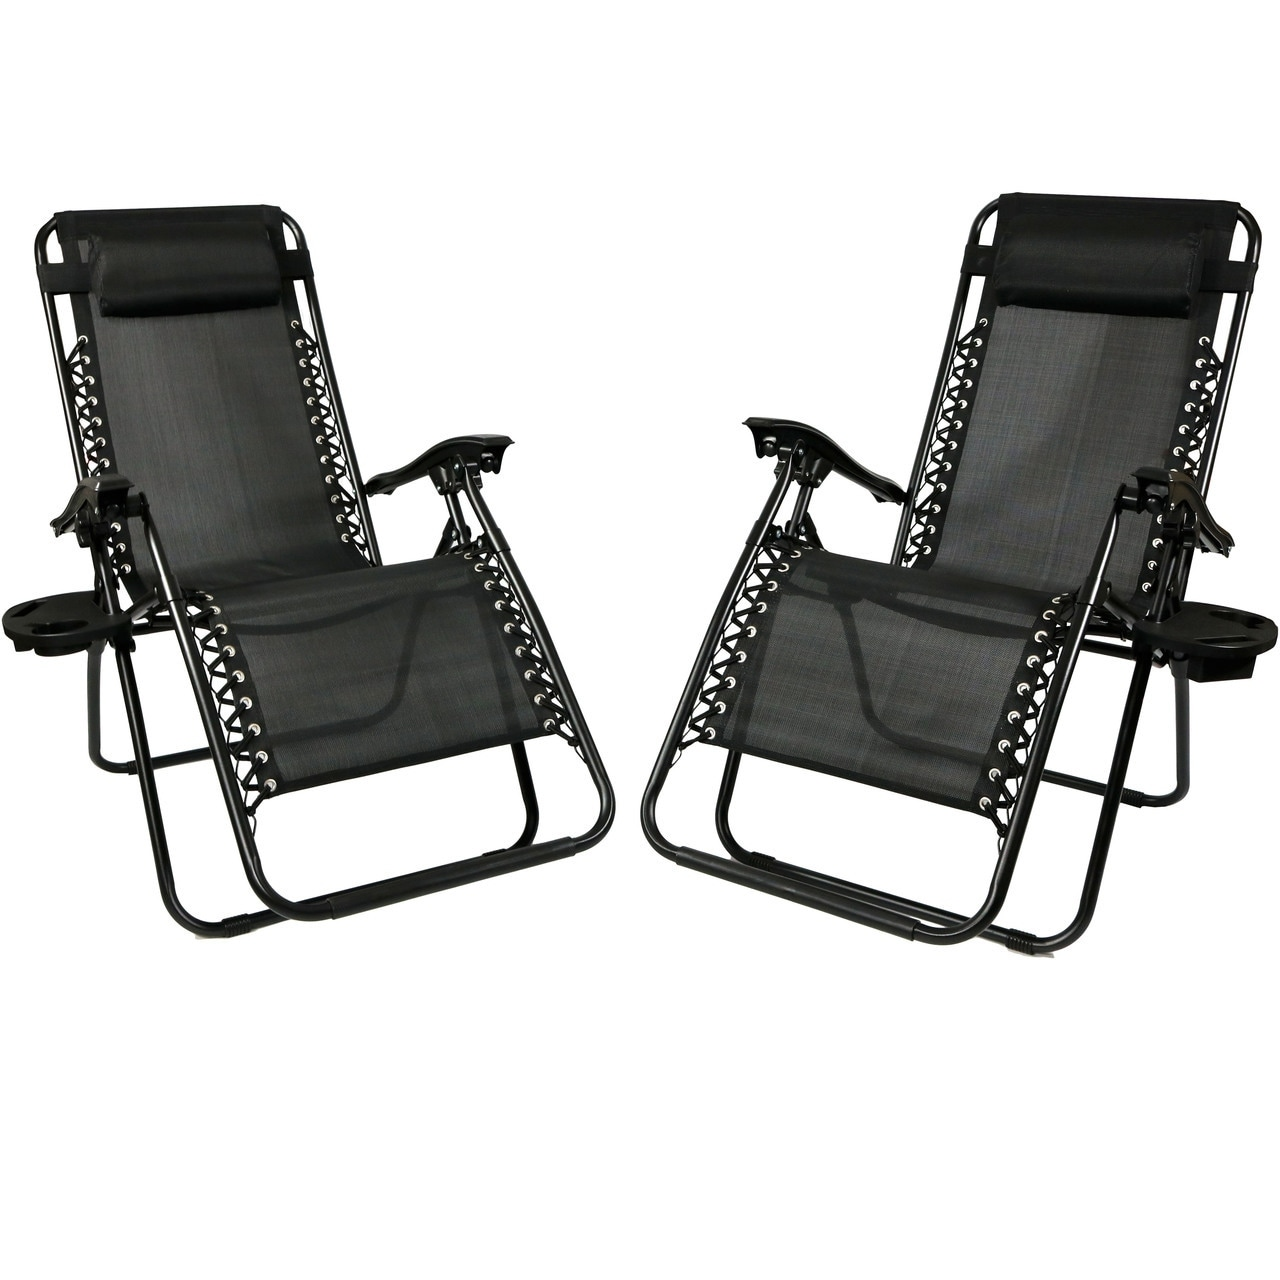 Sunnydaze Zero Gravity Lounge Chair with Pillow and Cup ...